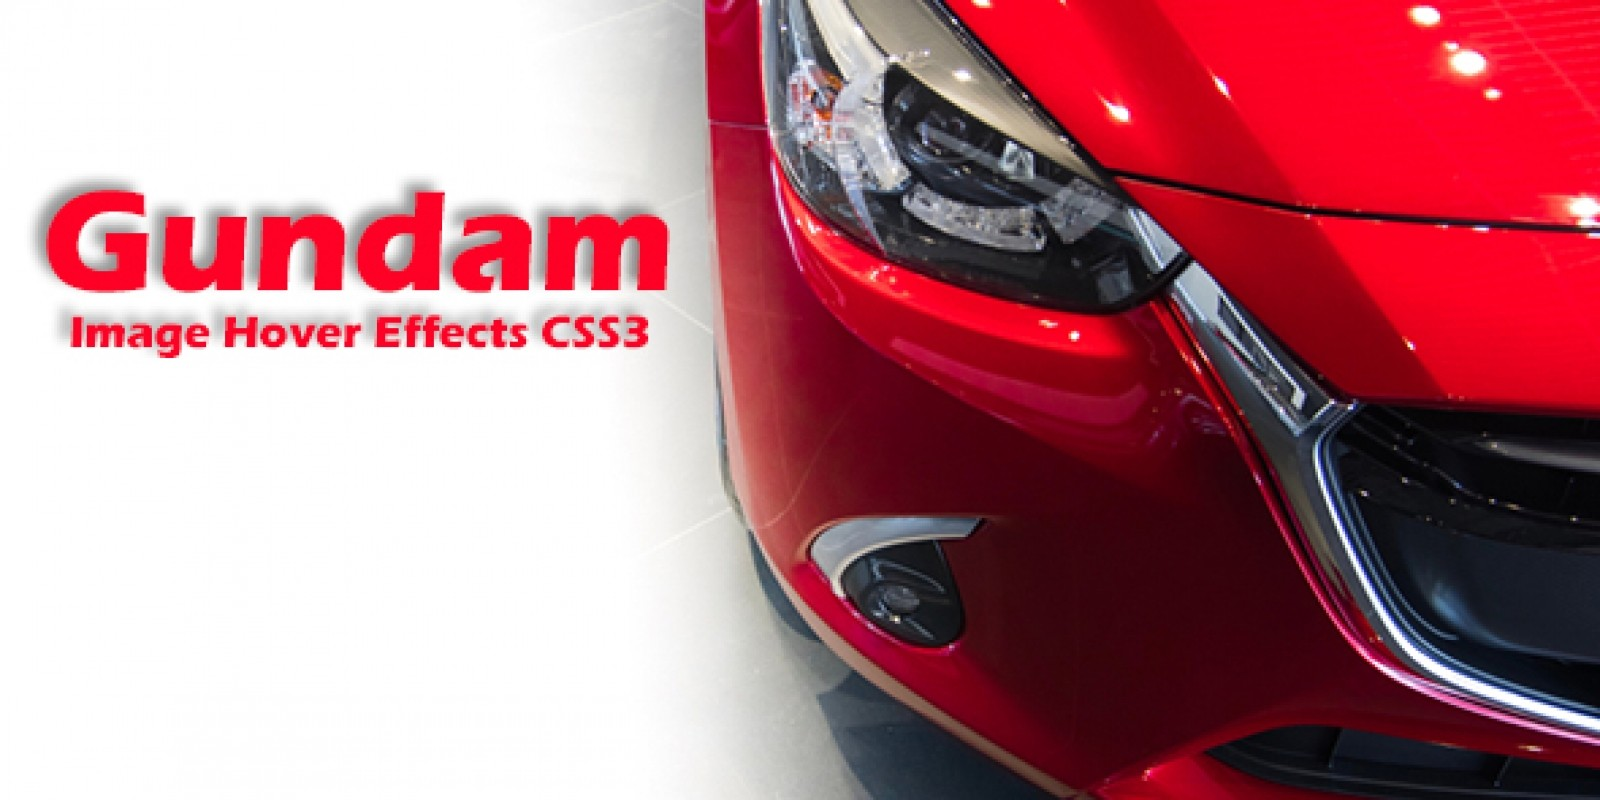 Gundam- CSS3 Image Hover Effects